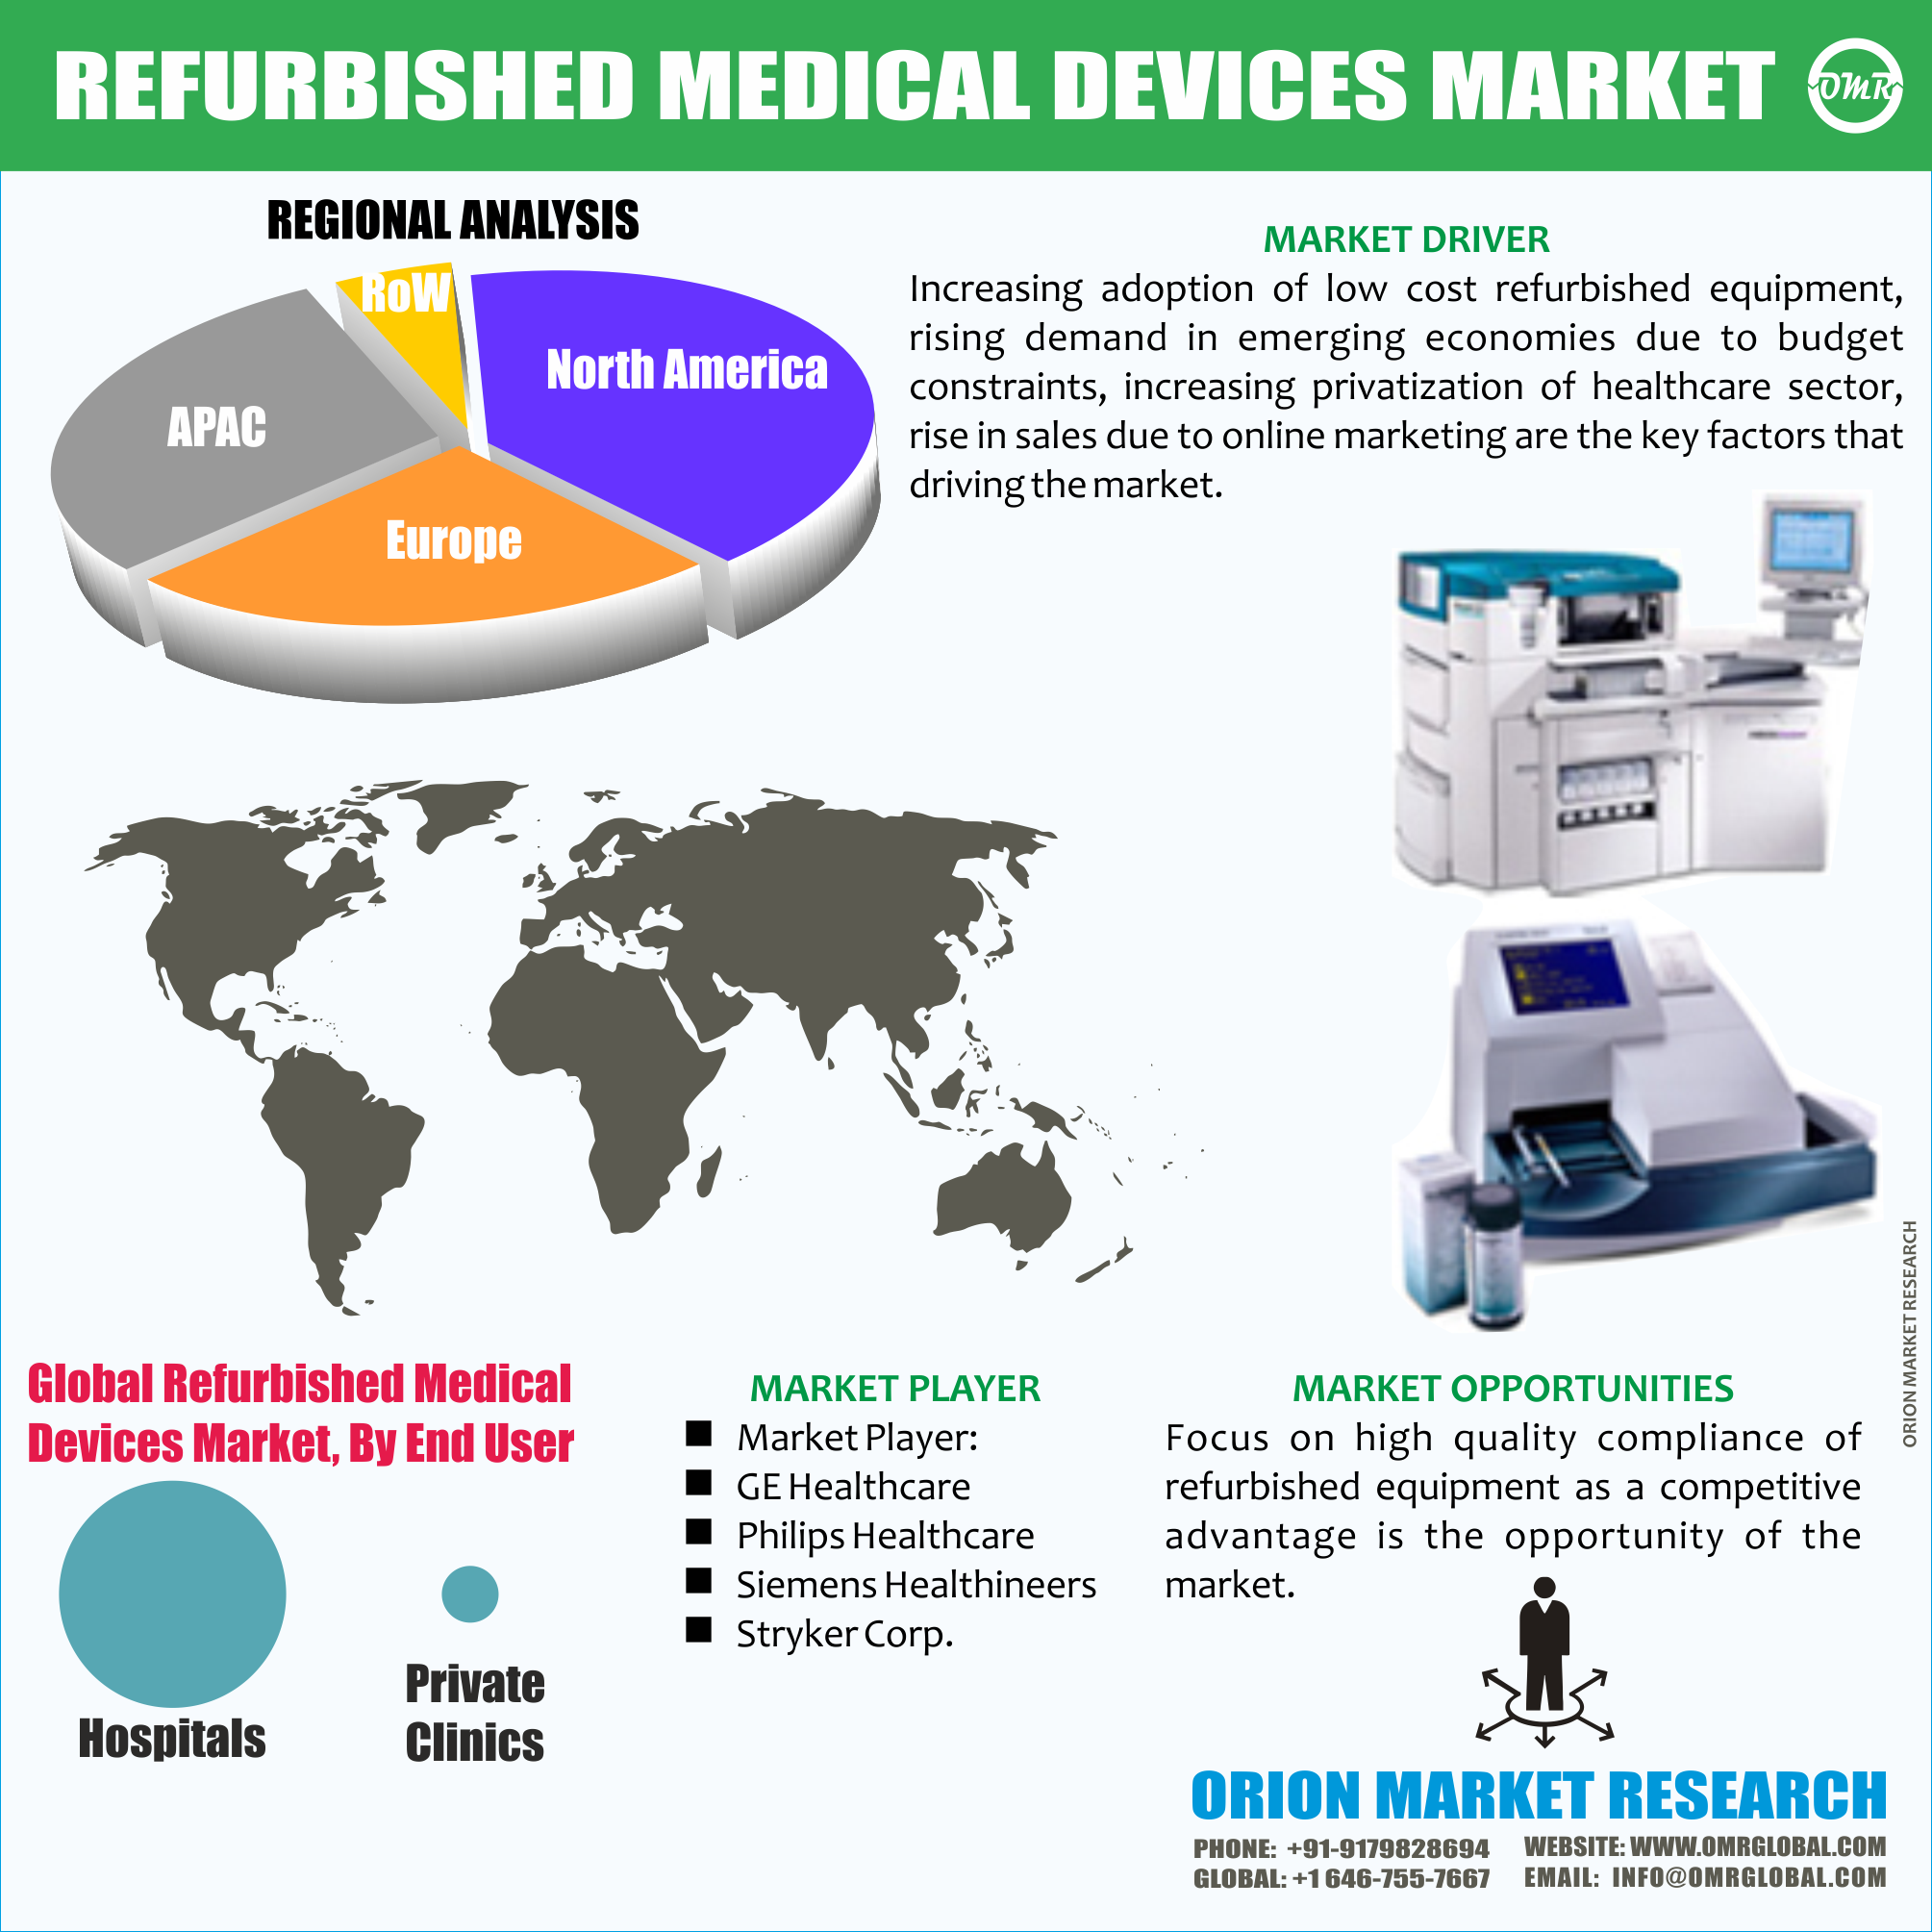 GLOBAL REFURBISHED MEDICAL DEVICES MARKET BY OMR